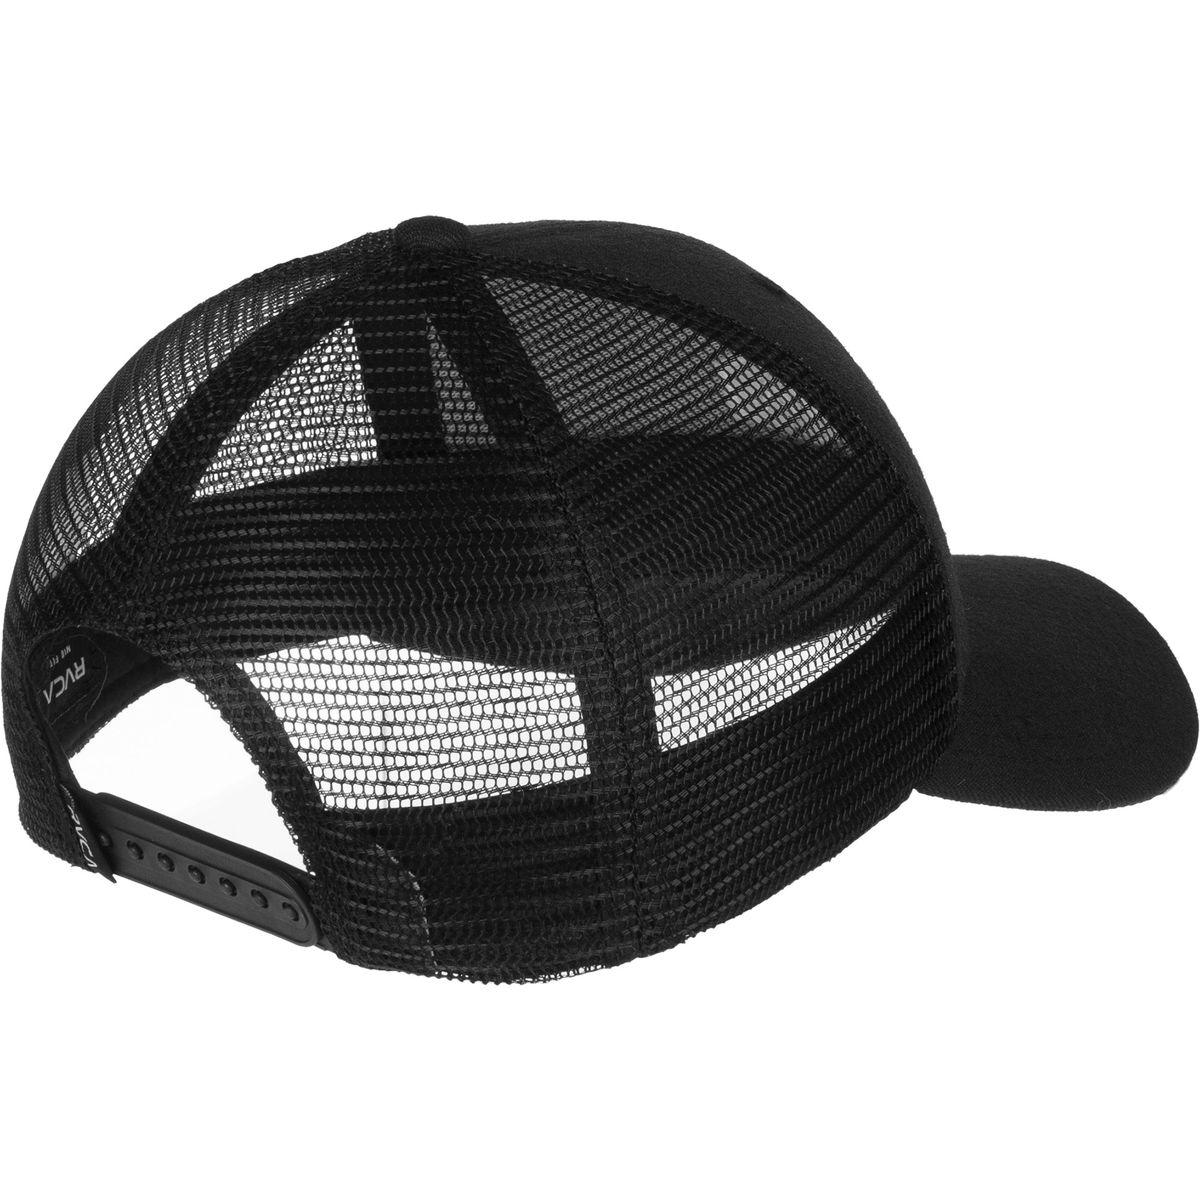 2ba5b615d812a ... clearance lyst rvca hex curve trucker hat in black for men ffa27 6ed95